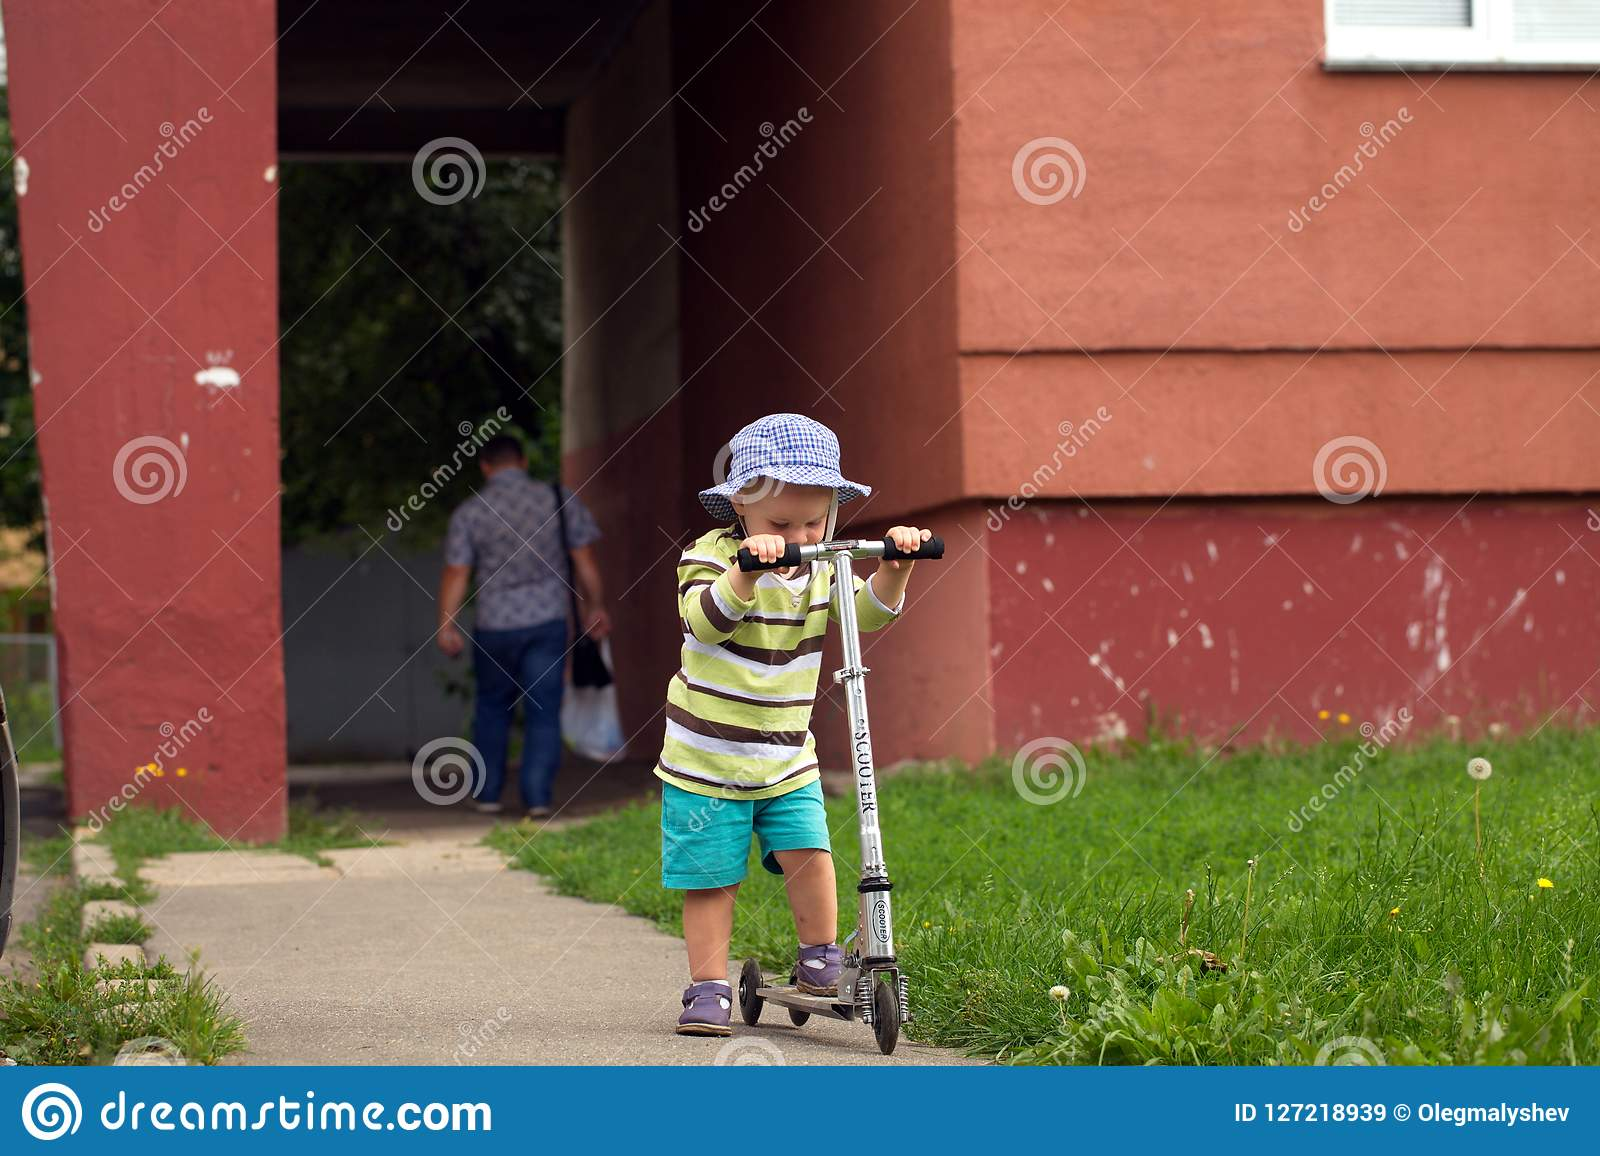 891916036dc0a Funny Child Skates On A City Street On A Scooter Stock Image - Image ...